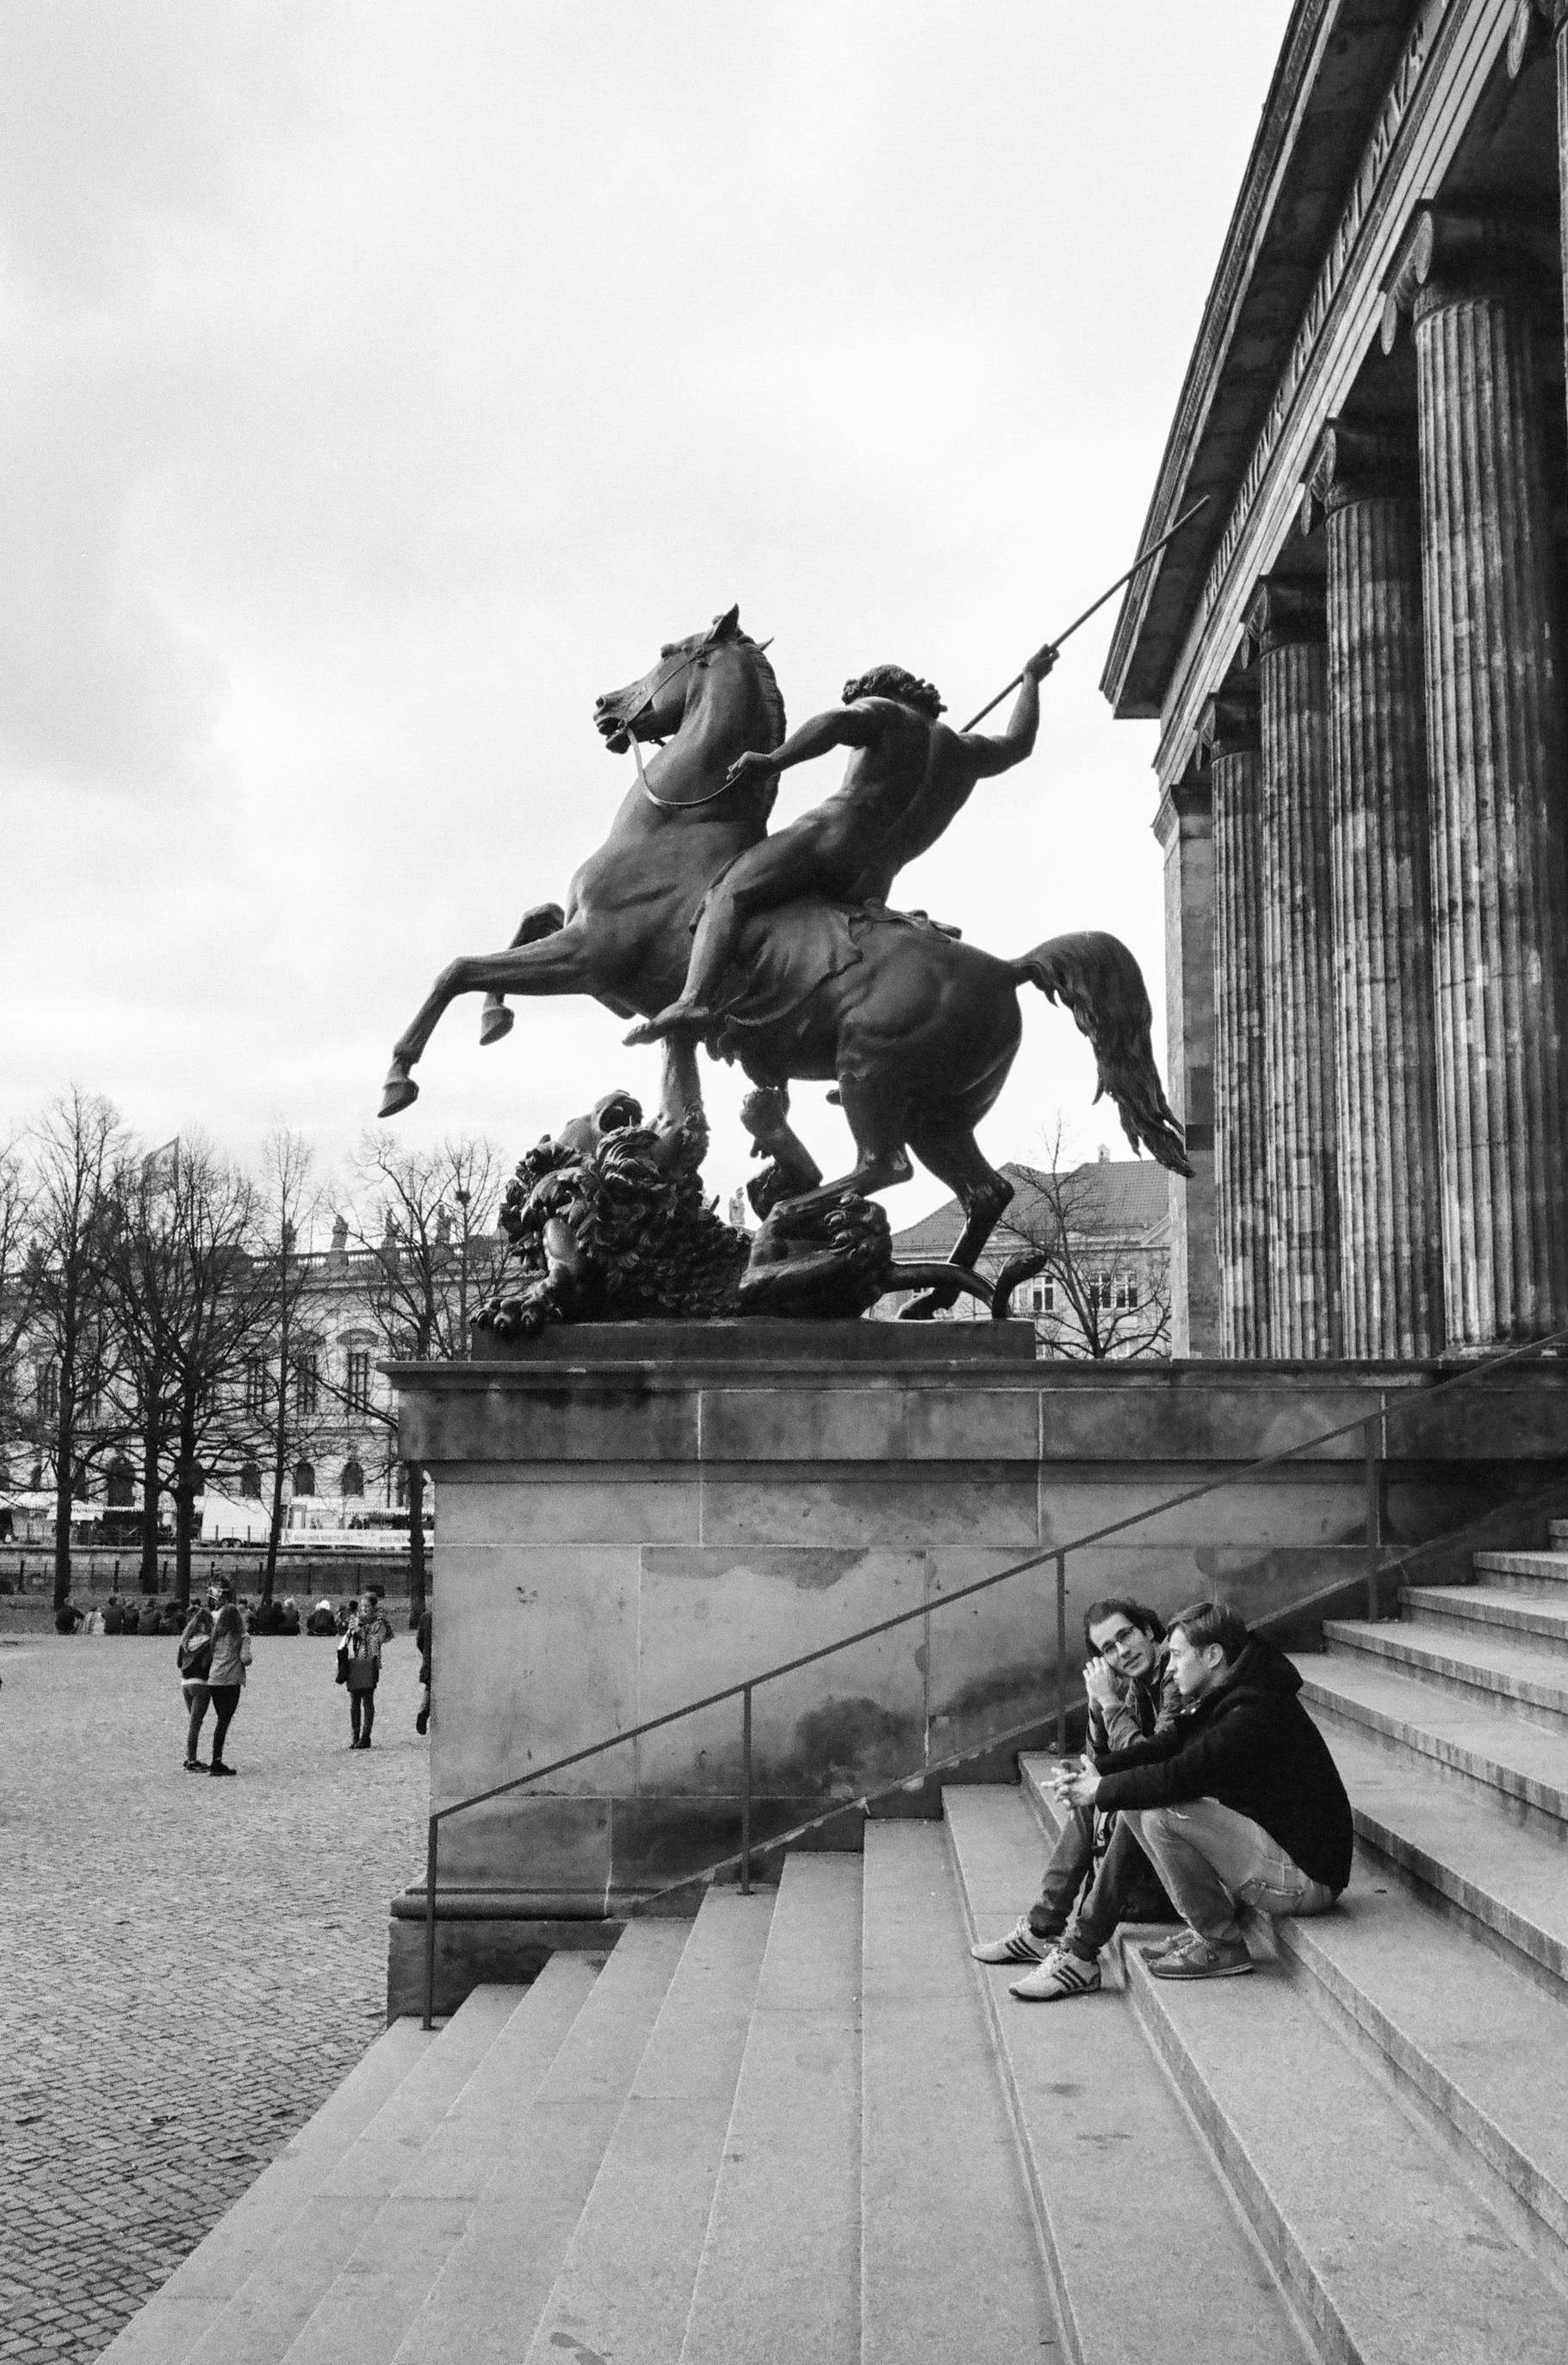 Altes Museum - Clifford Darby 2017